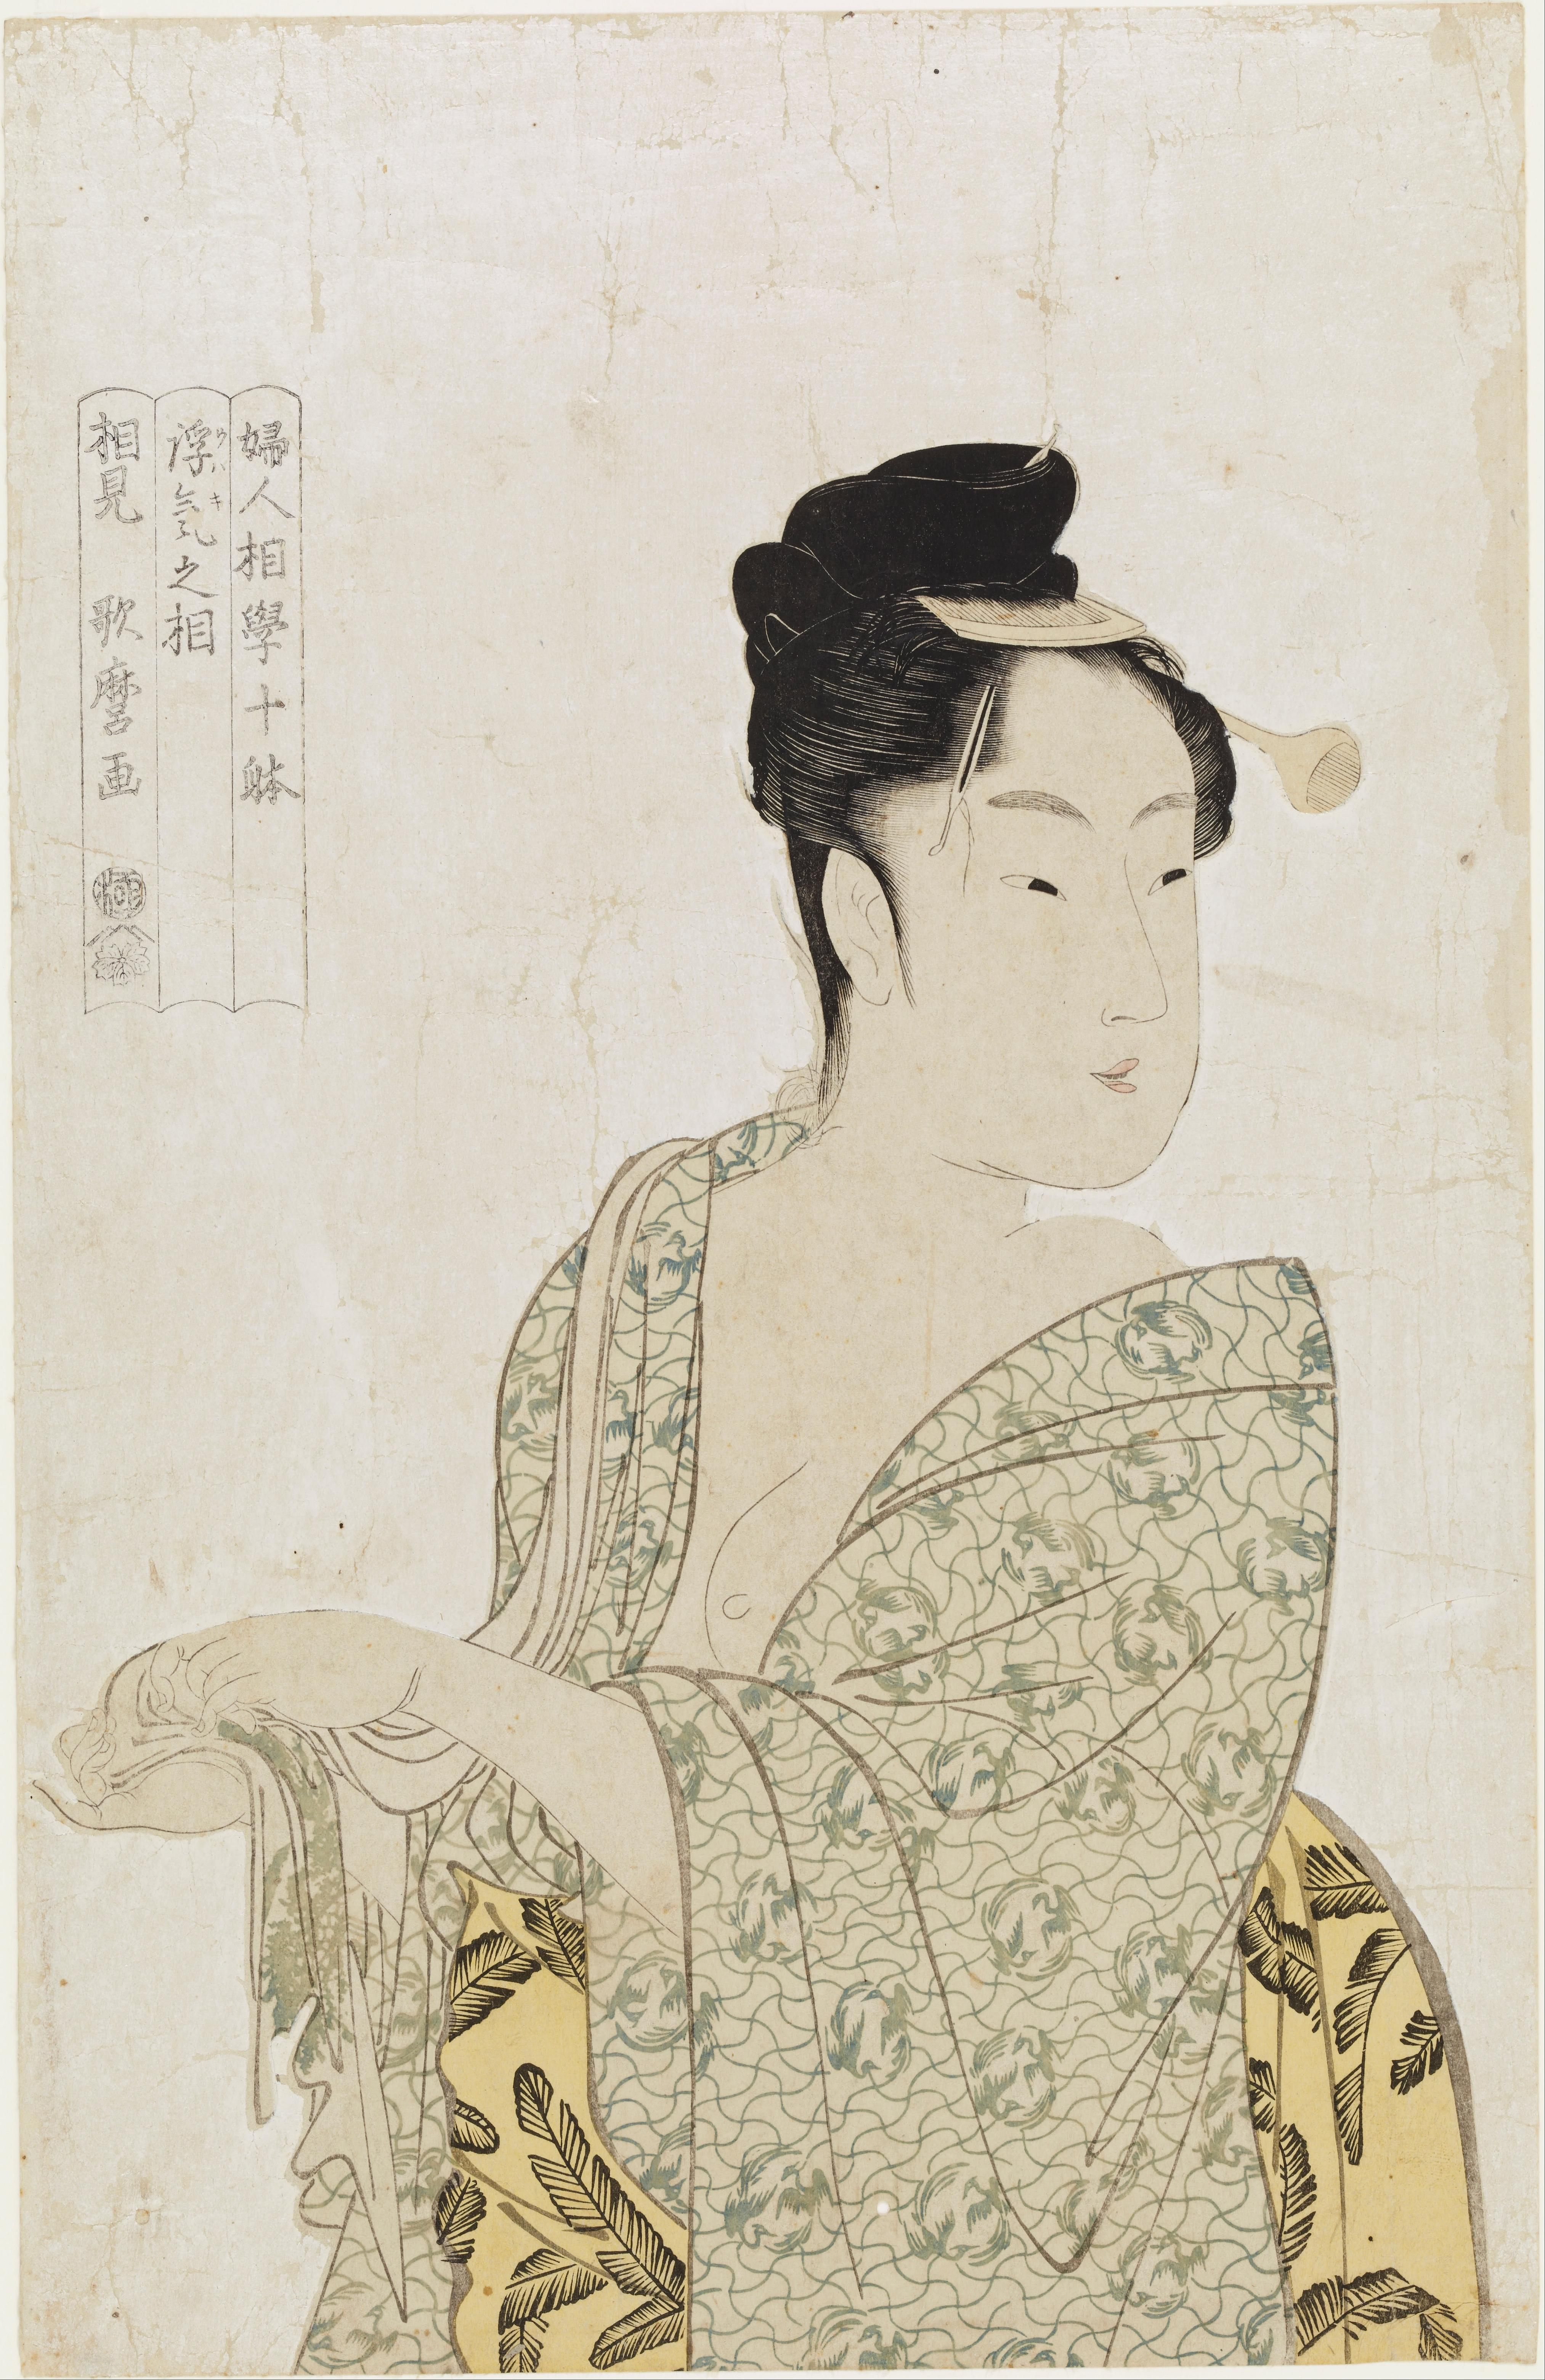 Kitagawa Utamaro - Ten physiognomic types of women, Coquettish type